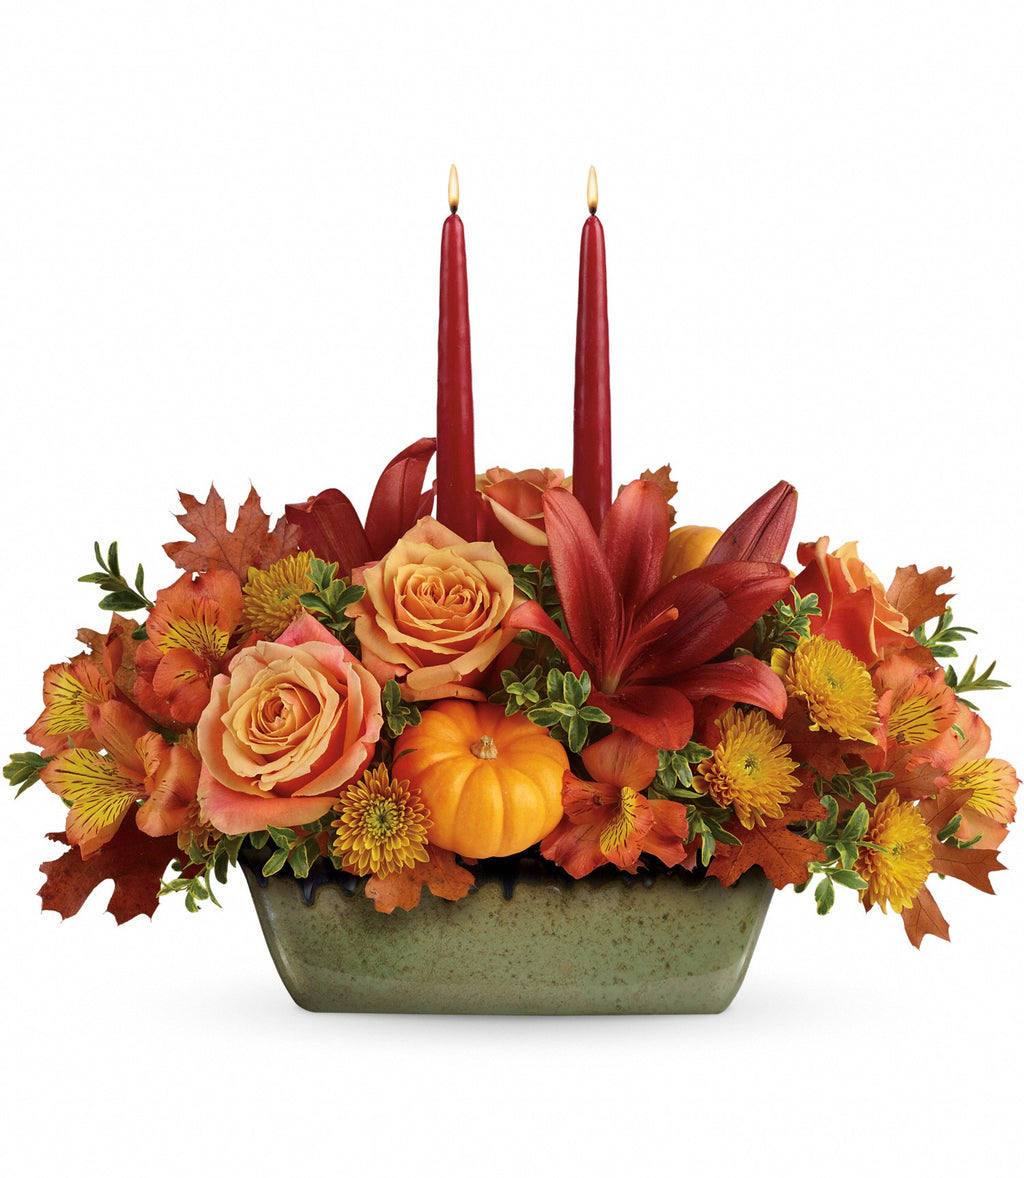 Country Oven Centerpiece